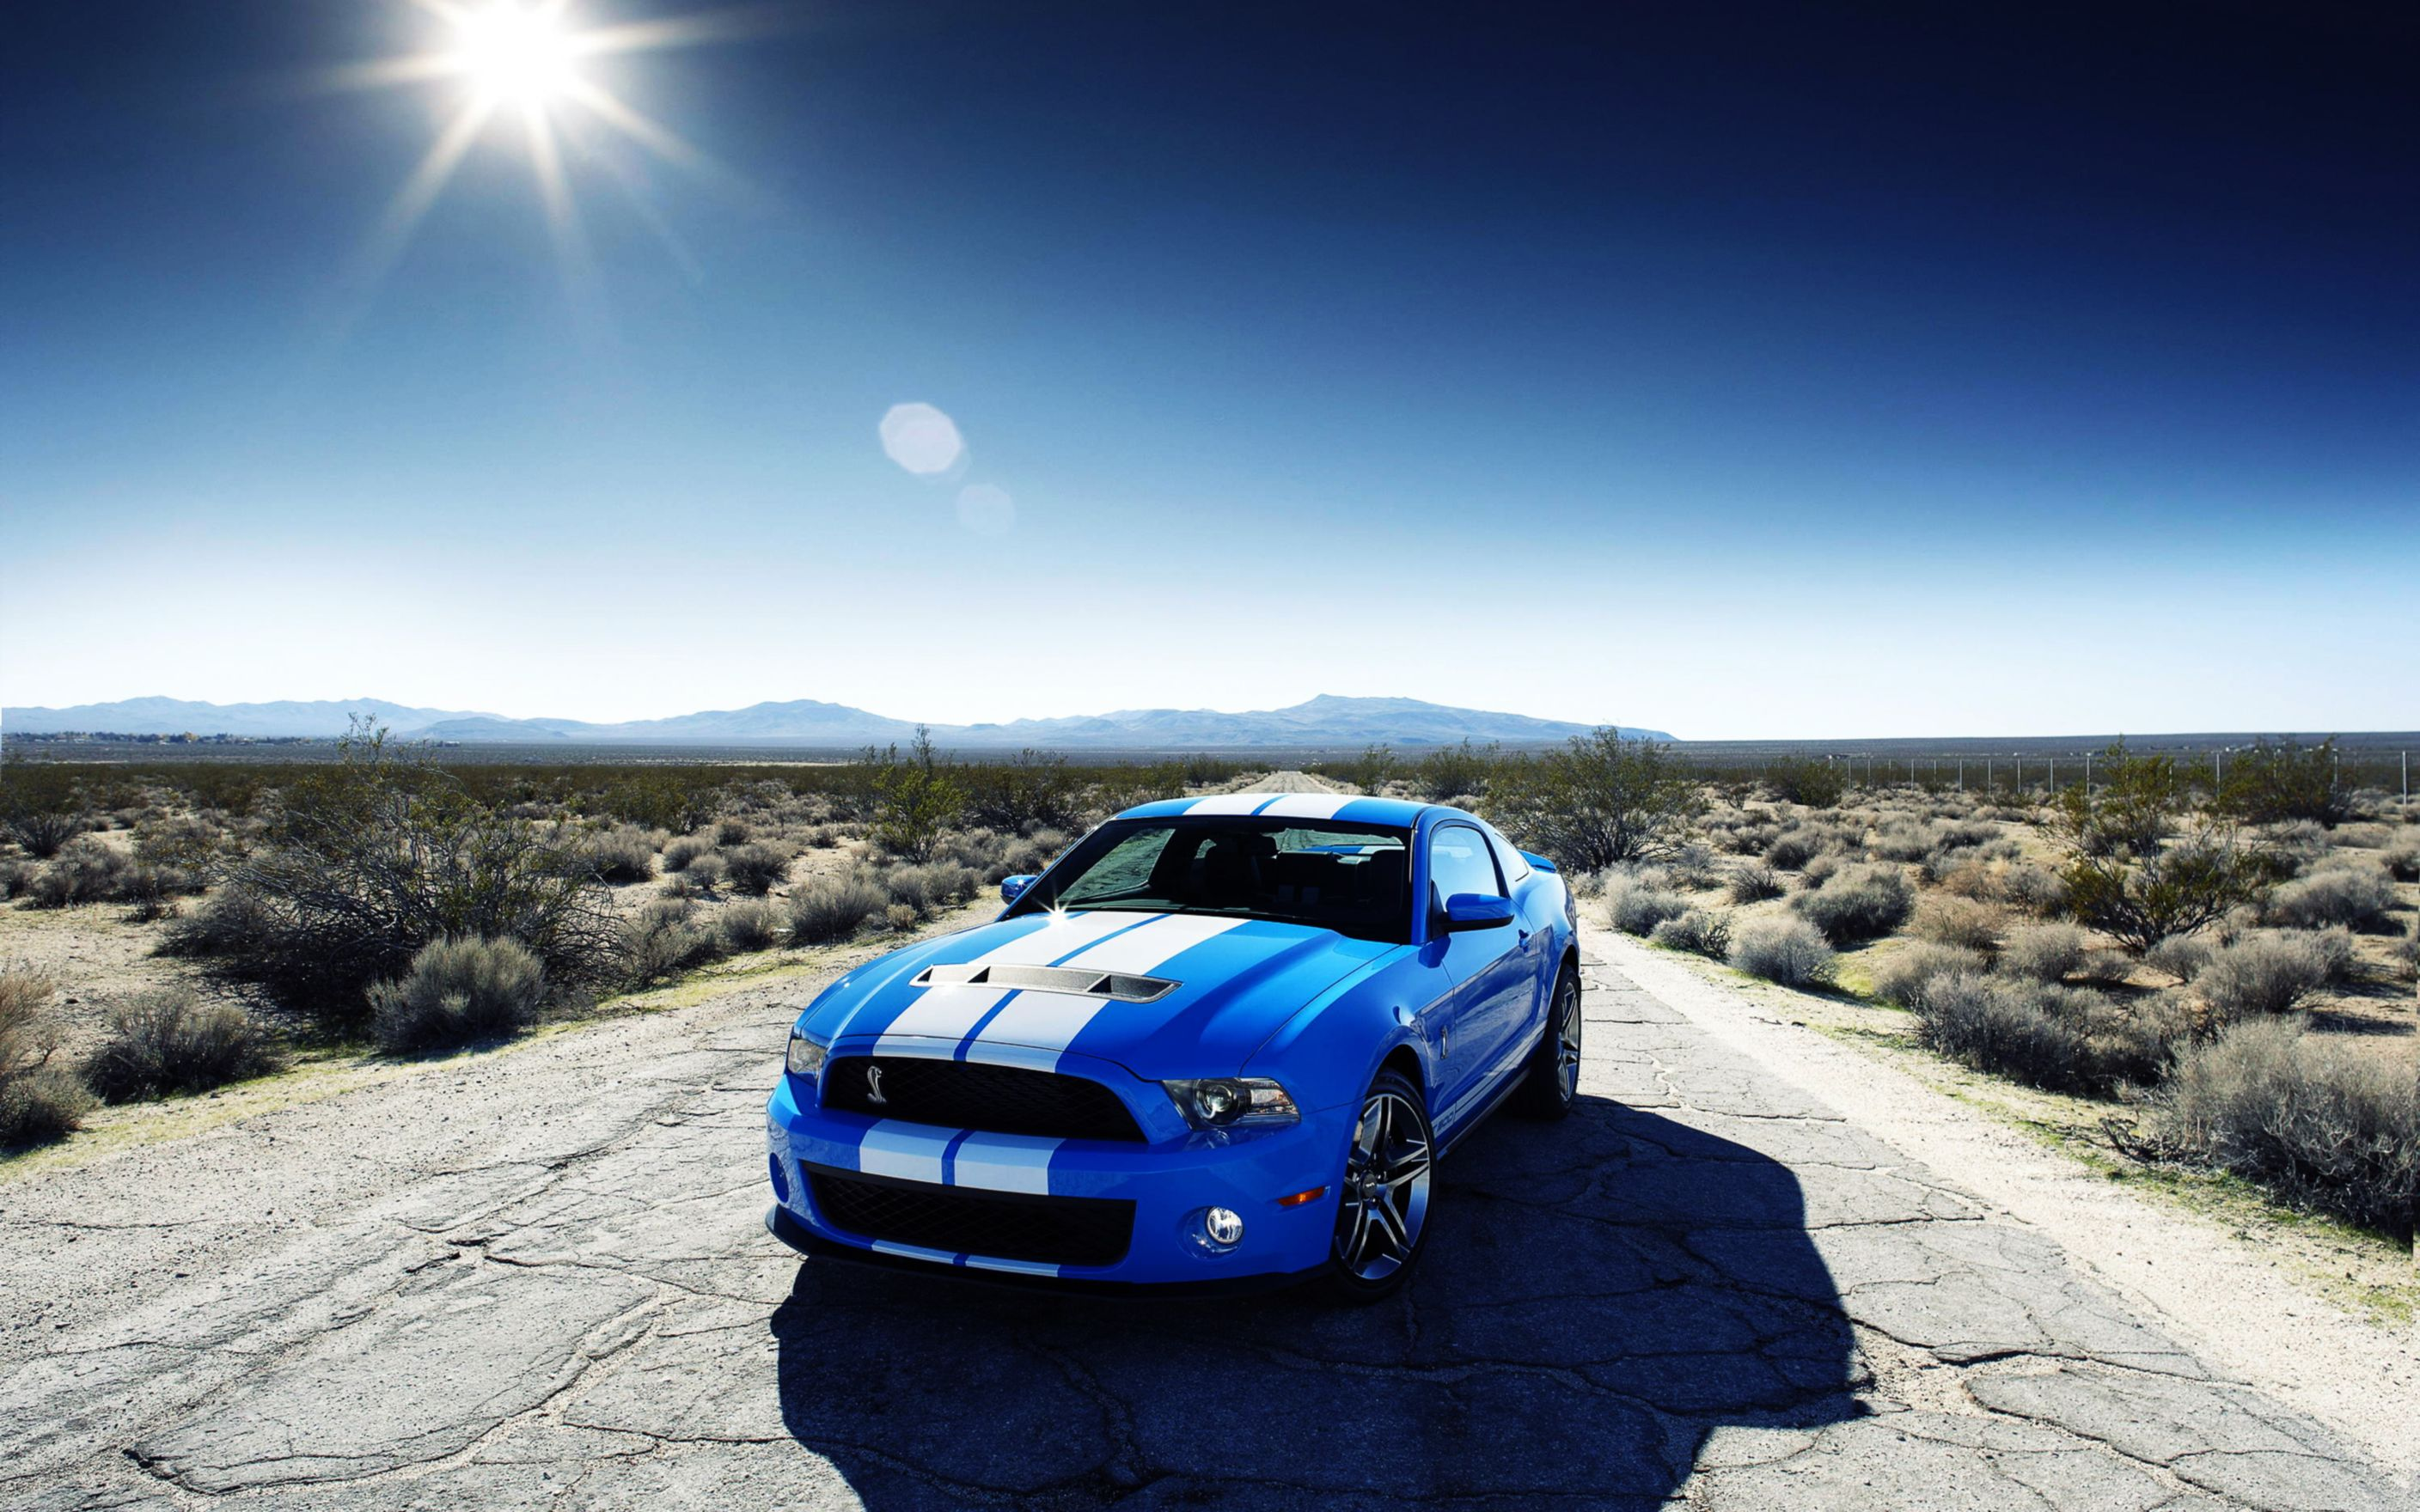 Download free HD Ford Shelby Gt500 Car Wide Wallpaper, image